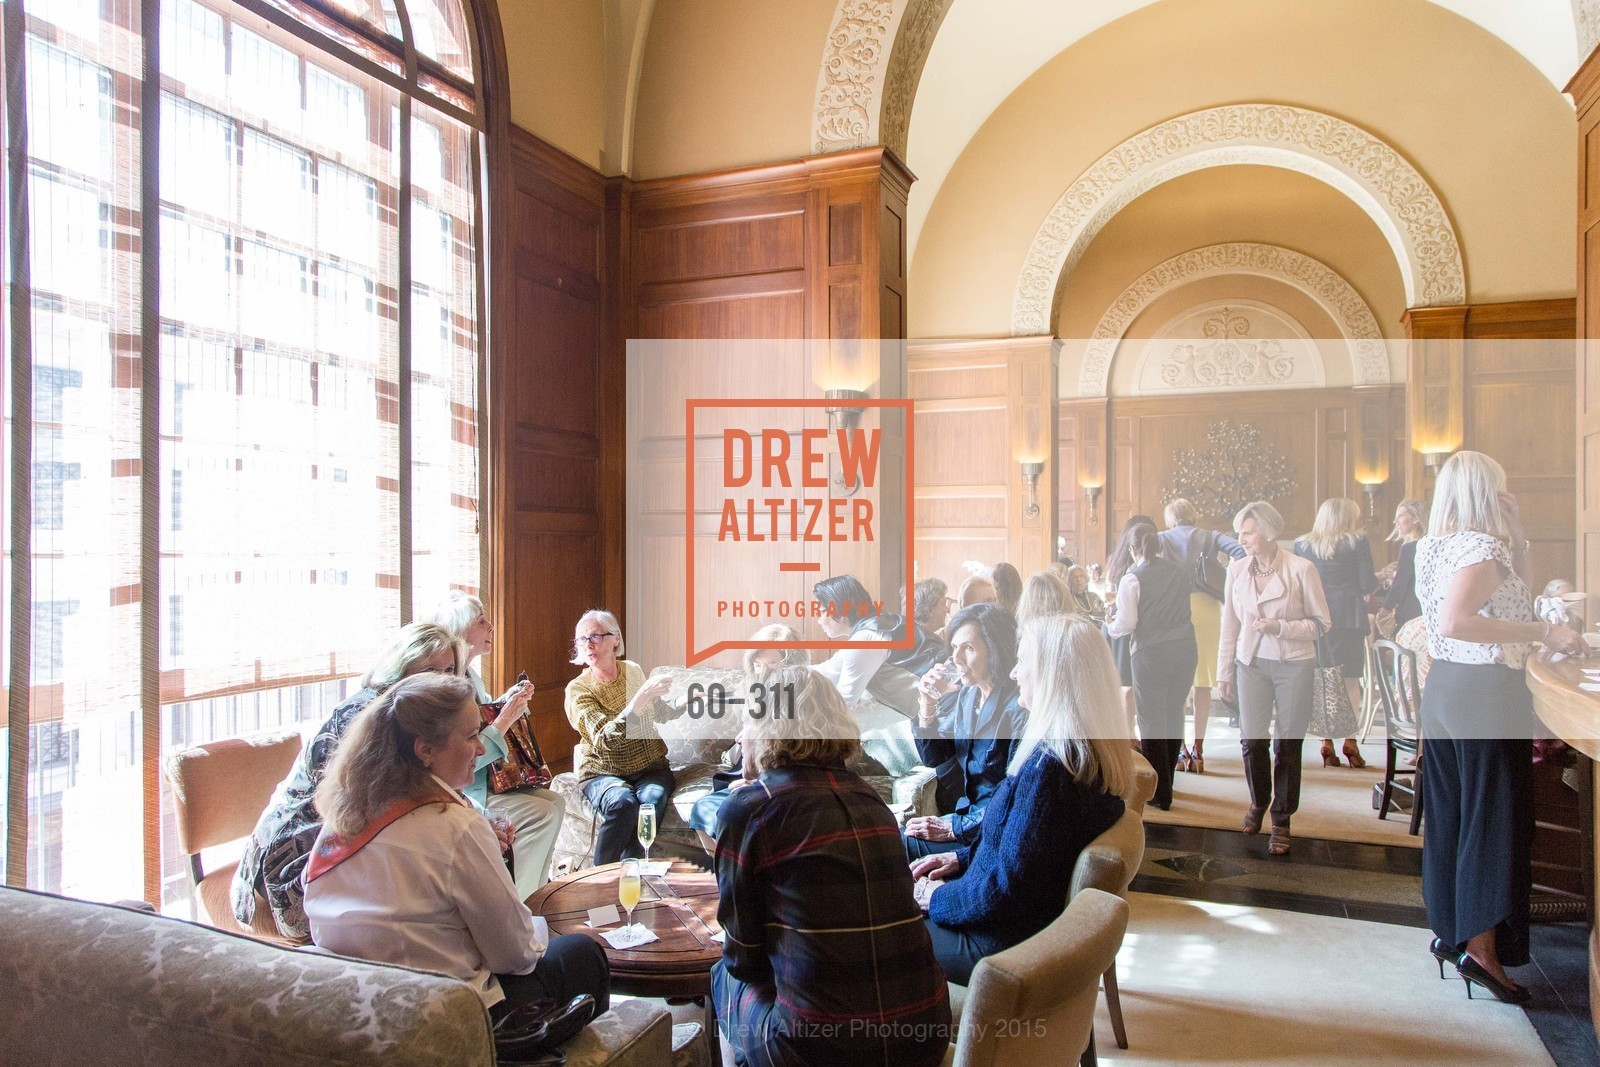 Atmosphere, Metropolitan Club/Centennial Fashion Show, September 24th, 2015, Photo,Drew Altizer, Drew Altizer Photography, full-service agency, private events, San Francisco photographer, photographer california